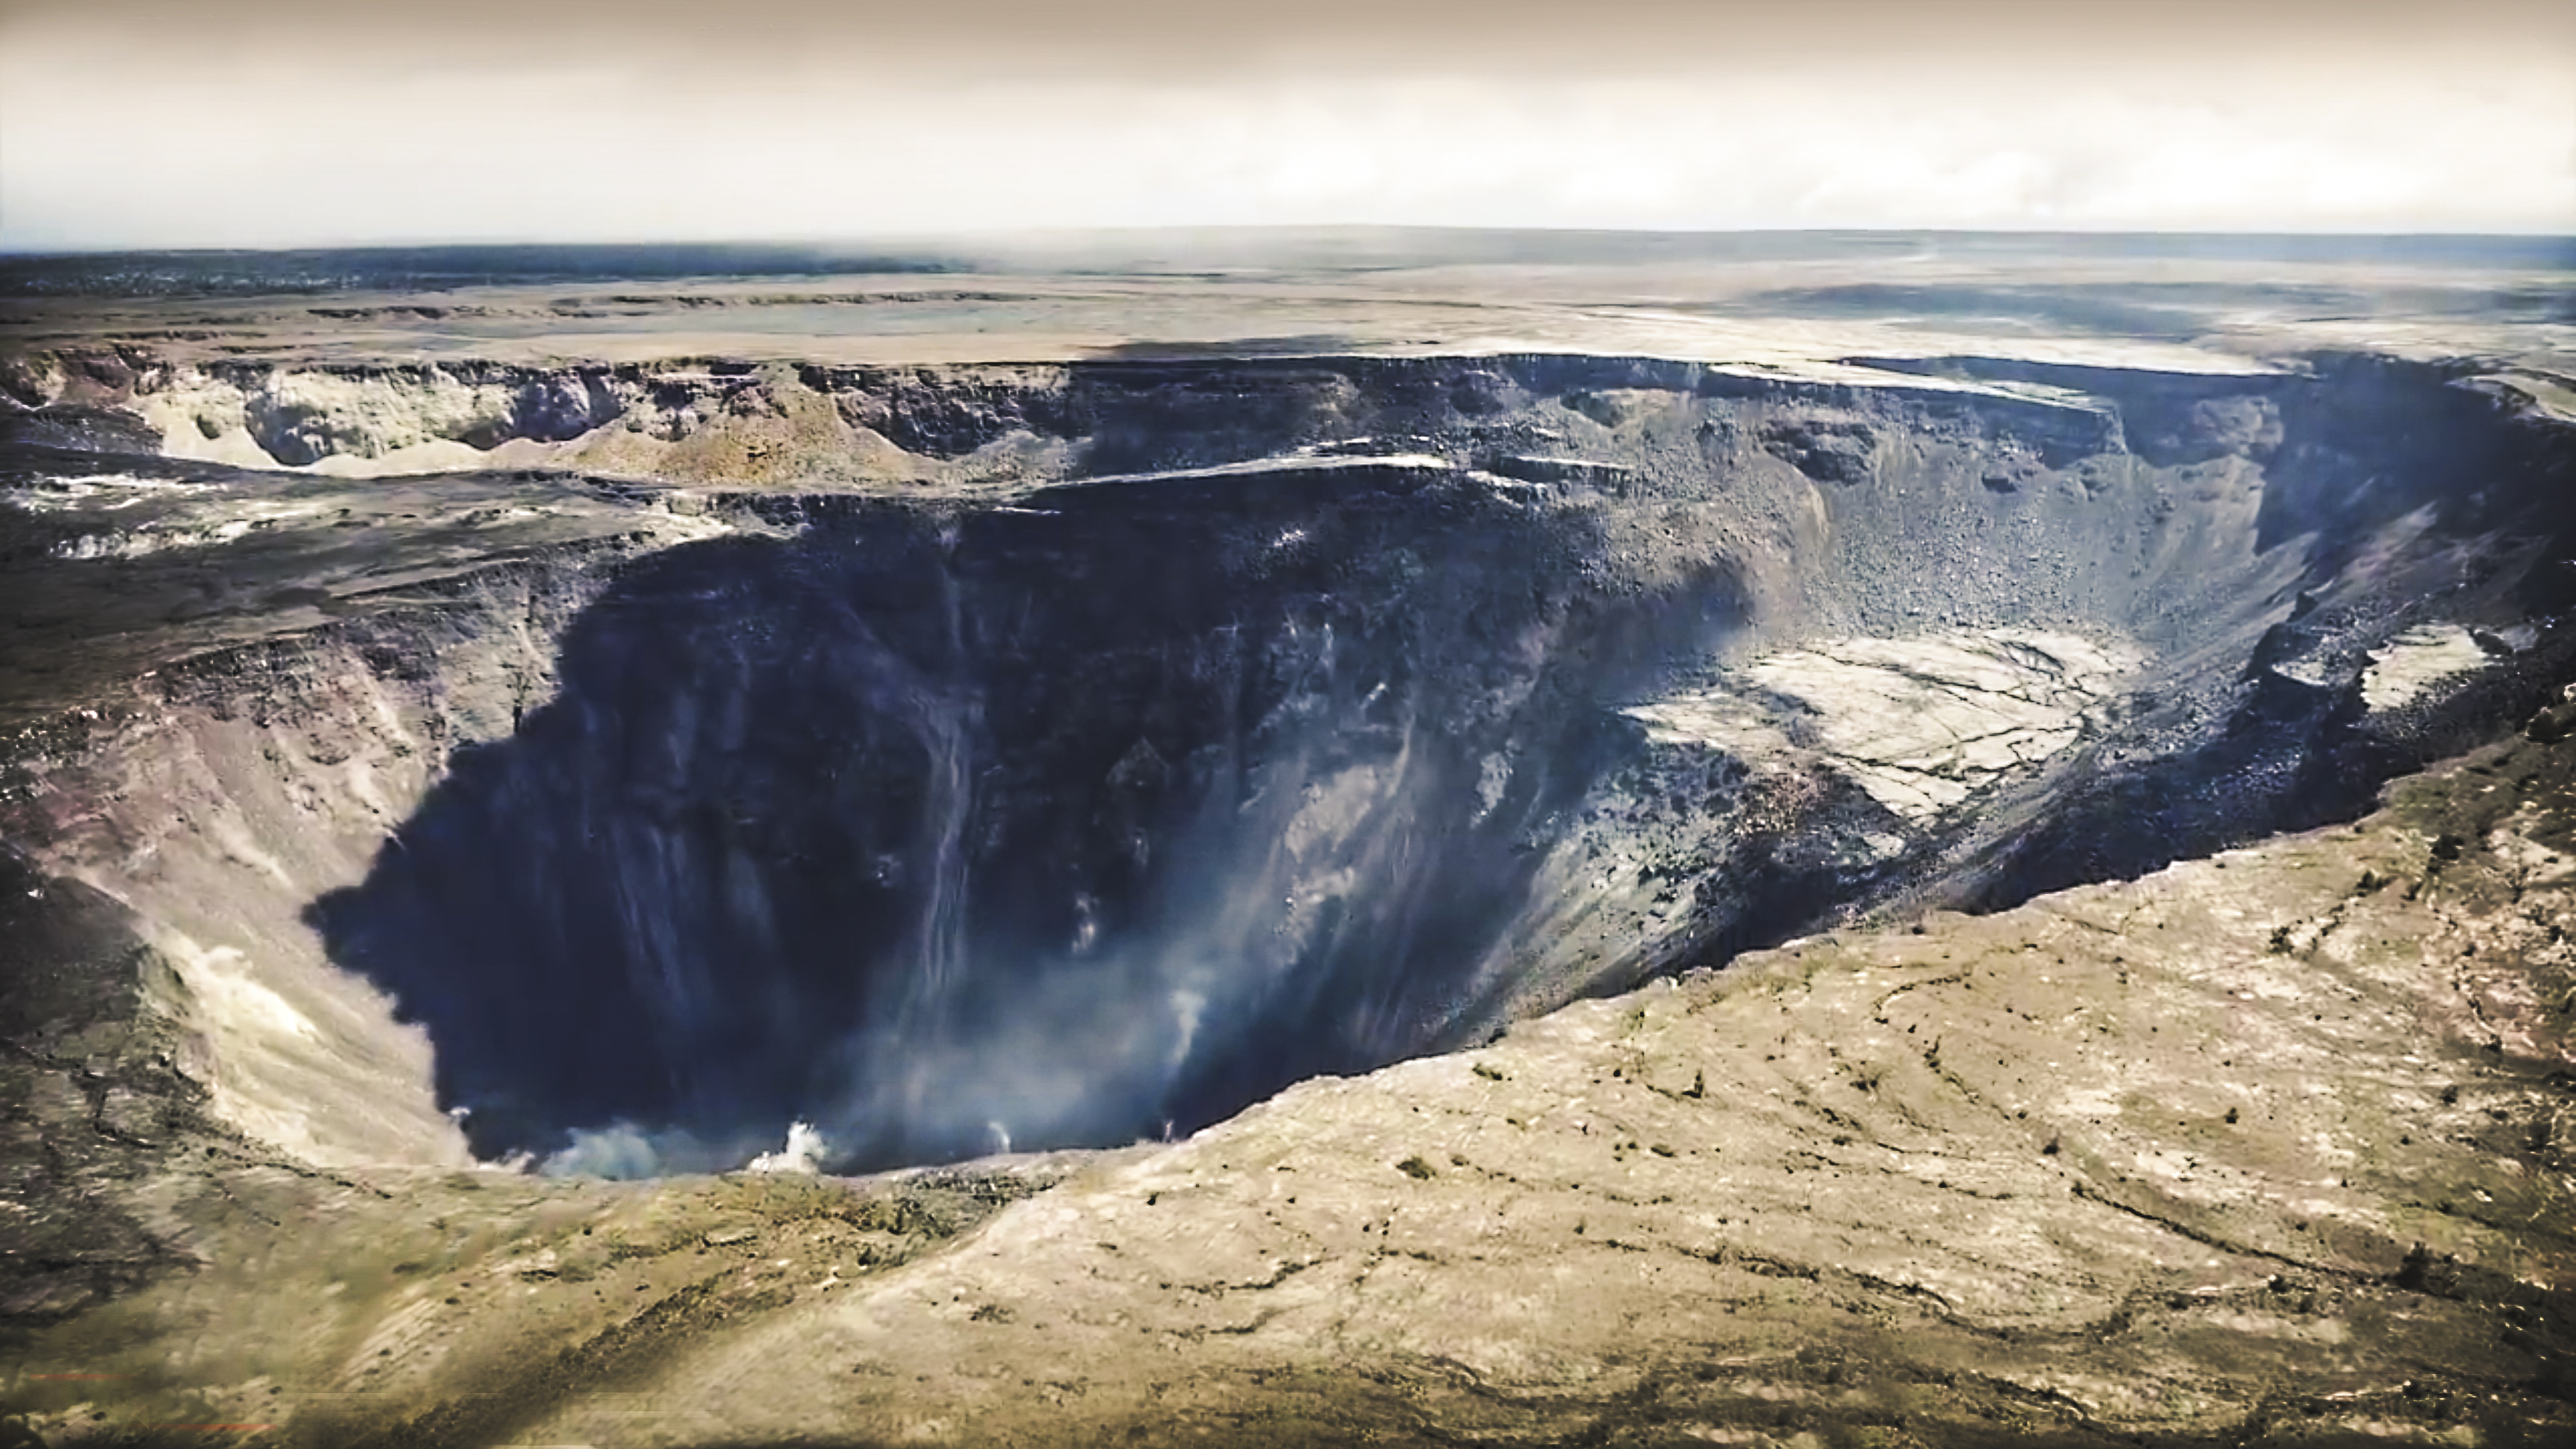 2018 Halemaumau collapsed Crater